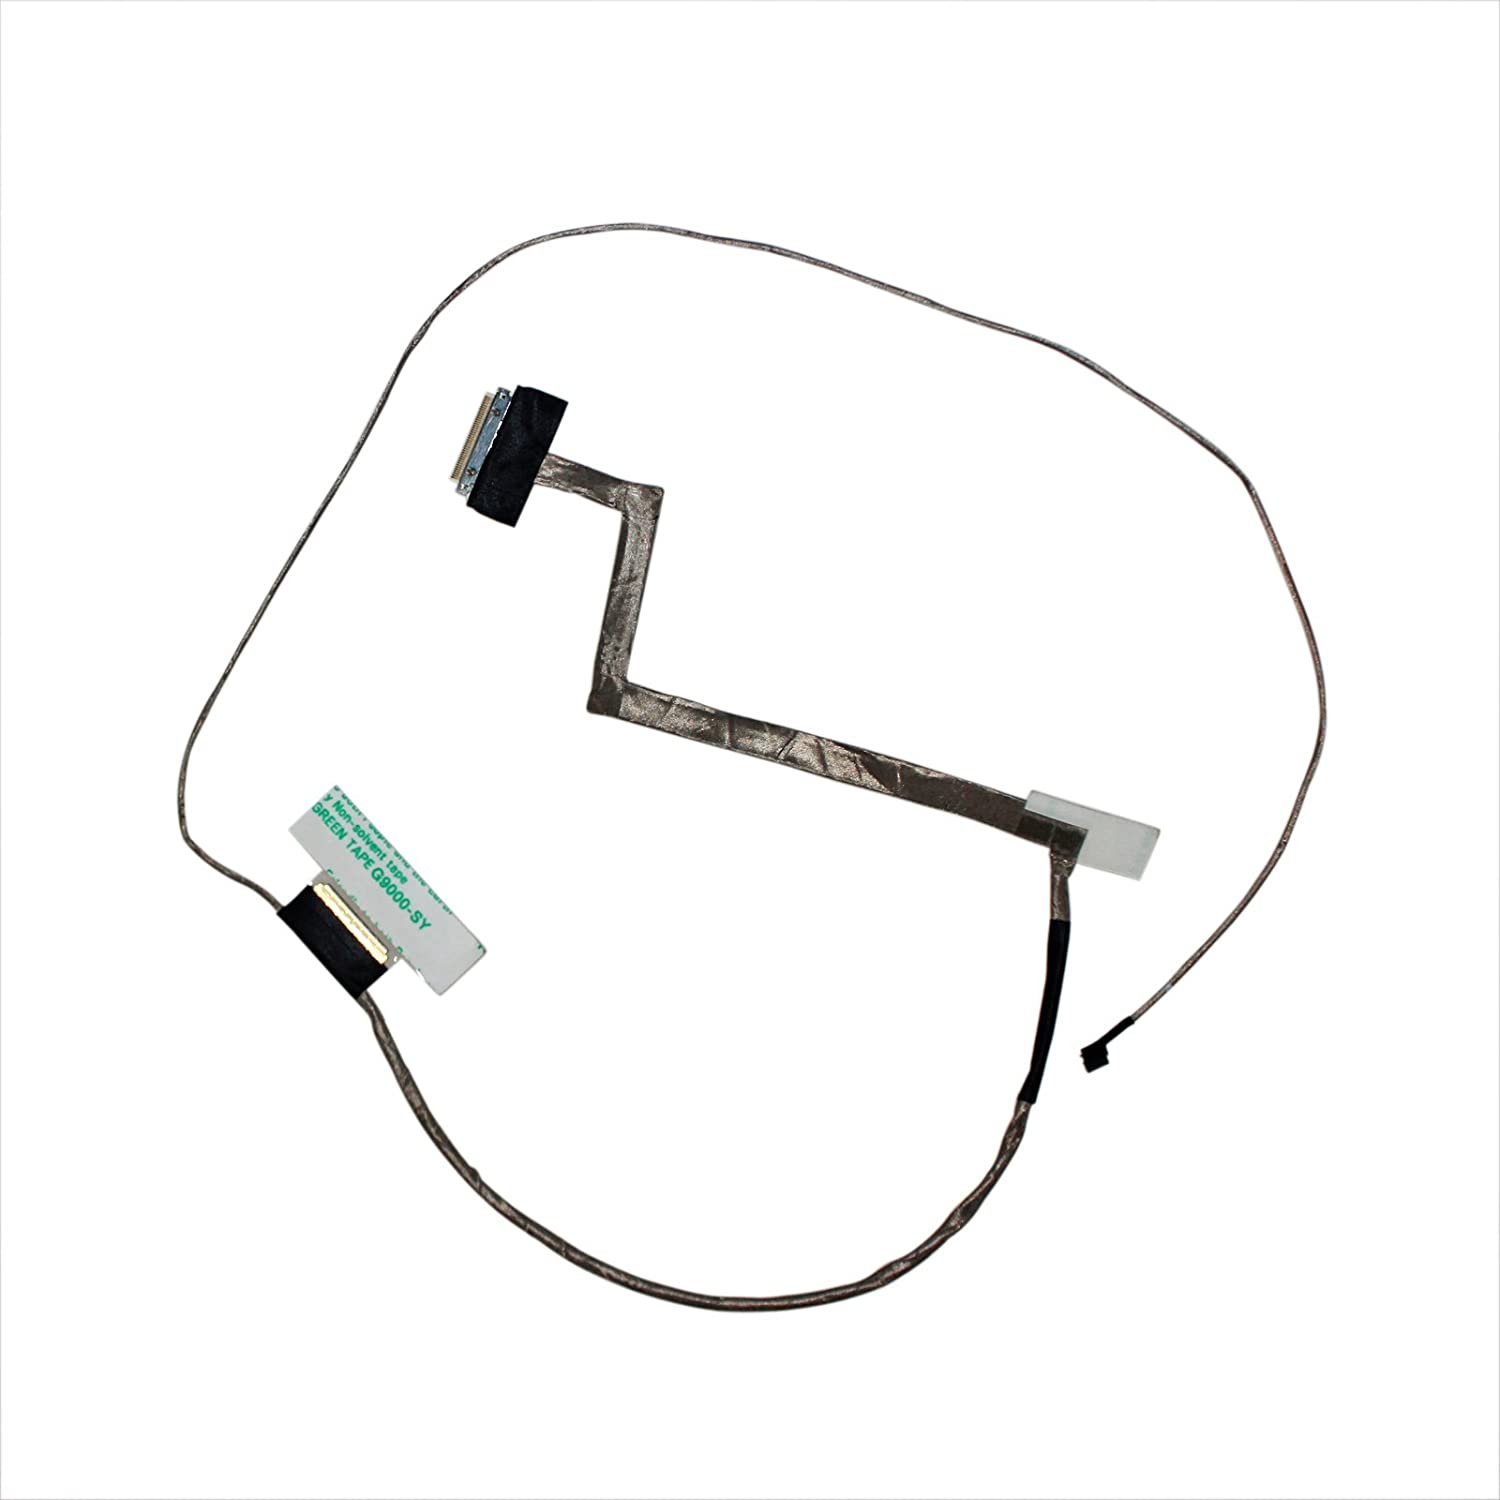 Zahara 90202117 LCD LED Display Screen Cable VIWZ2 Replacement for Lenovo IdeaPad B500 P500 Z500 Z505 DC02001MC10